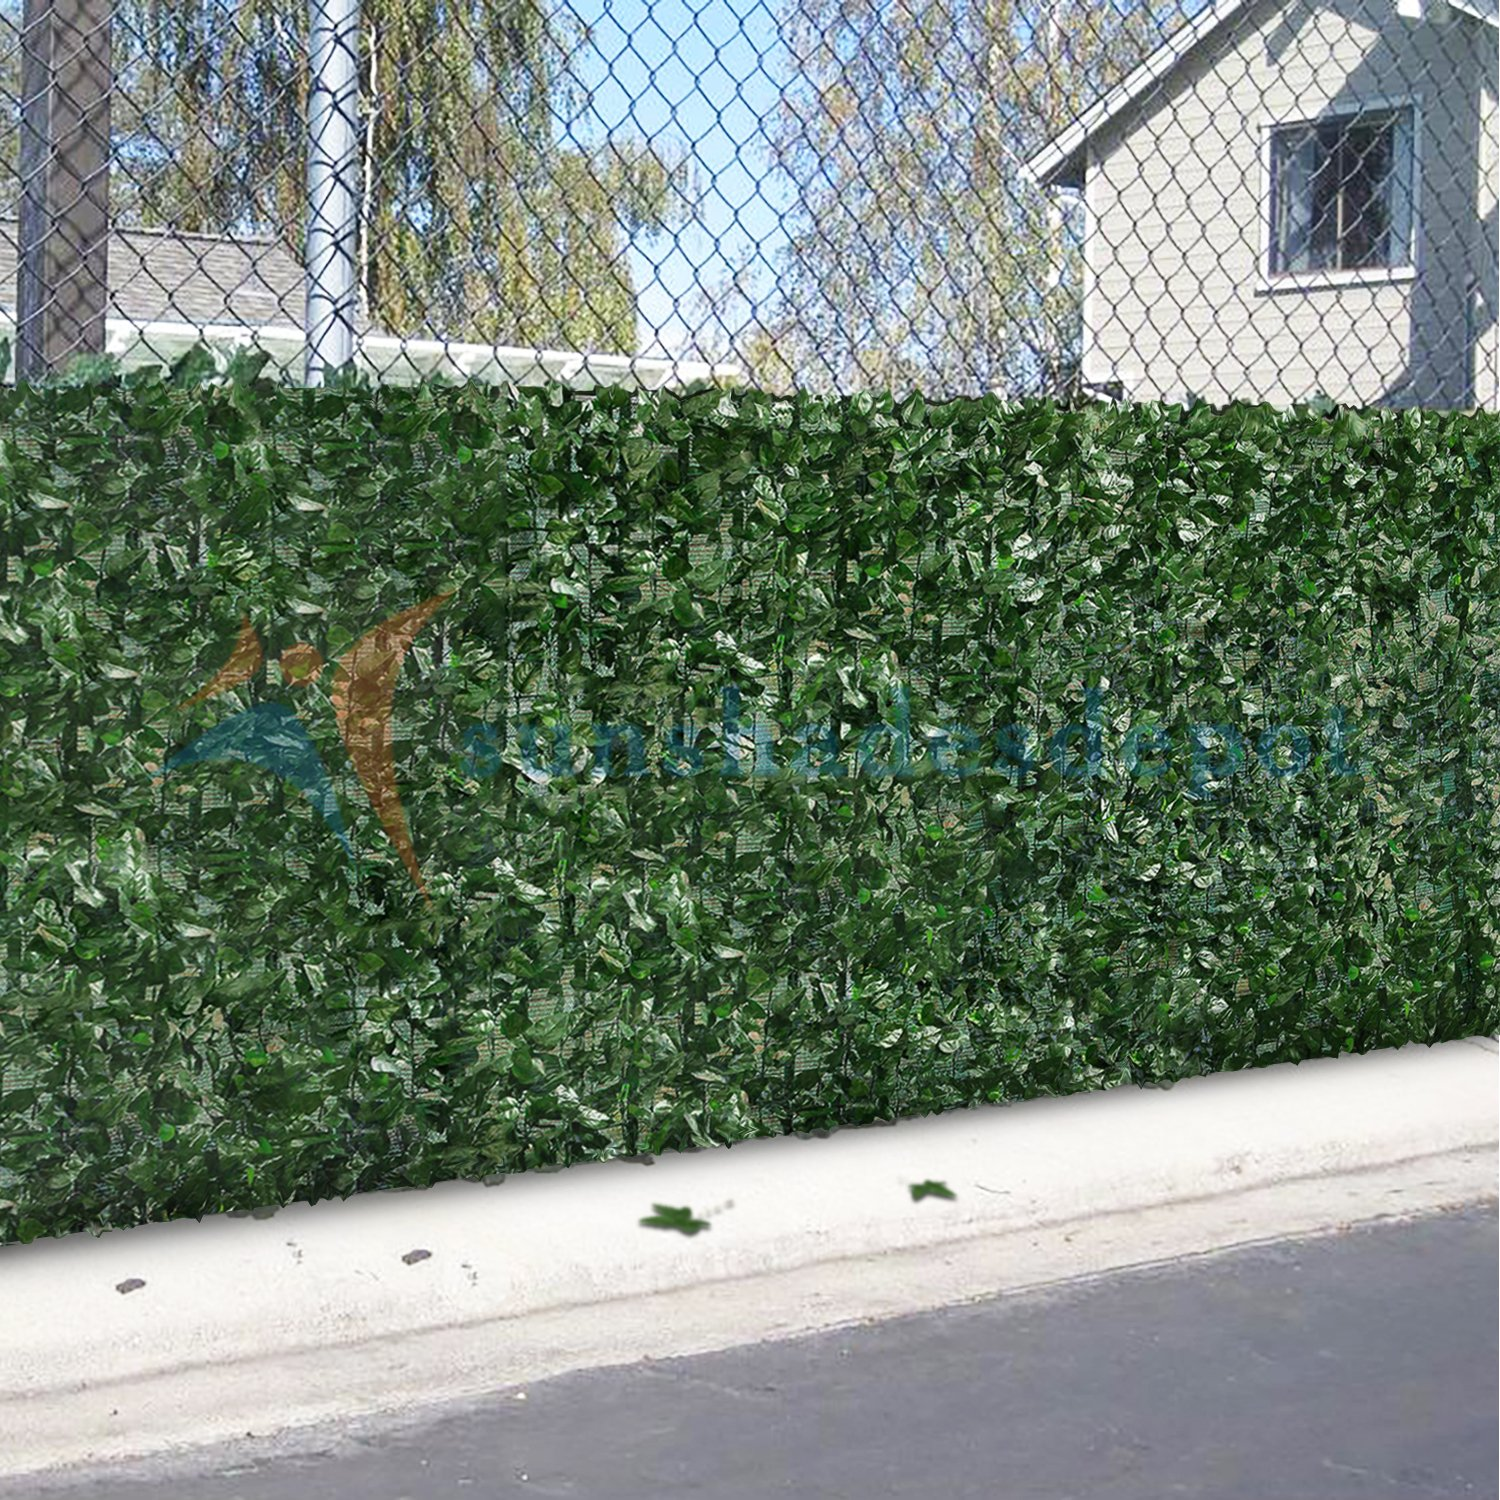 Sunshades Depot 4' x 14' Artificial Faux Ivy Privacy Fence Screen Leaf Vine Decoration Panel with Mesh Back by Sunshades Depot (Image #7)